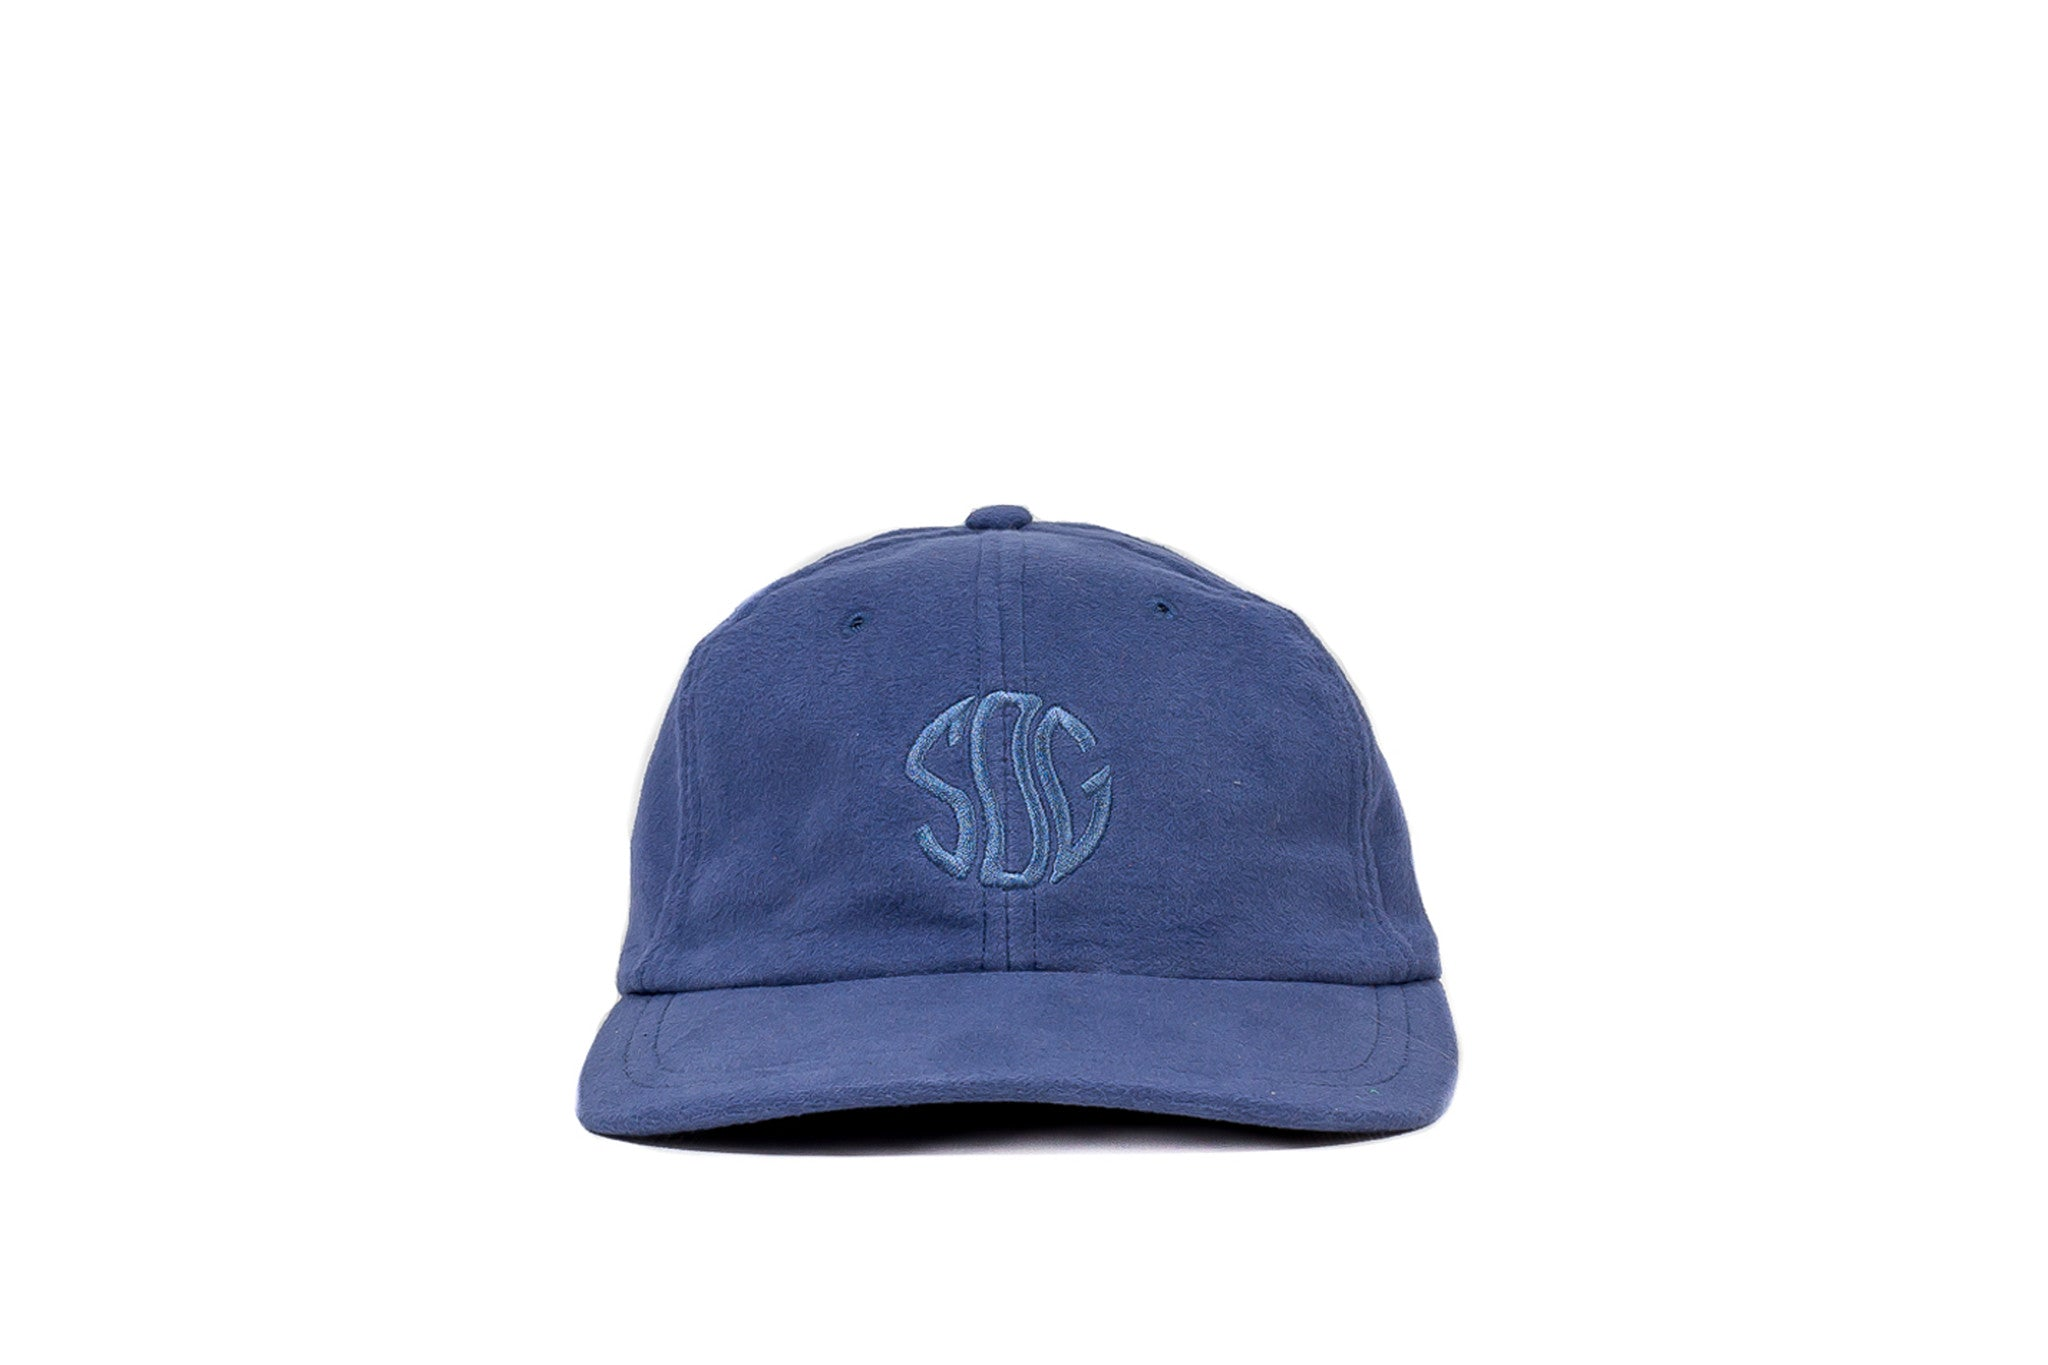 SEVEN OAK GROVE MOLESKIN CAP - FRENCH BLUE